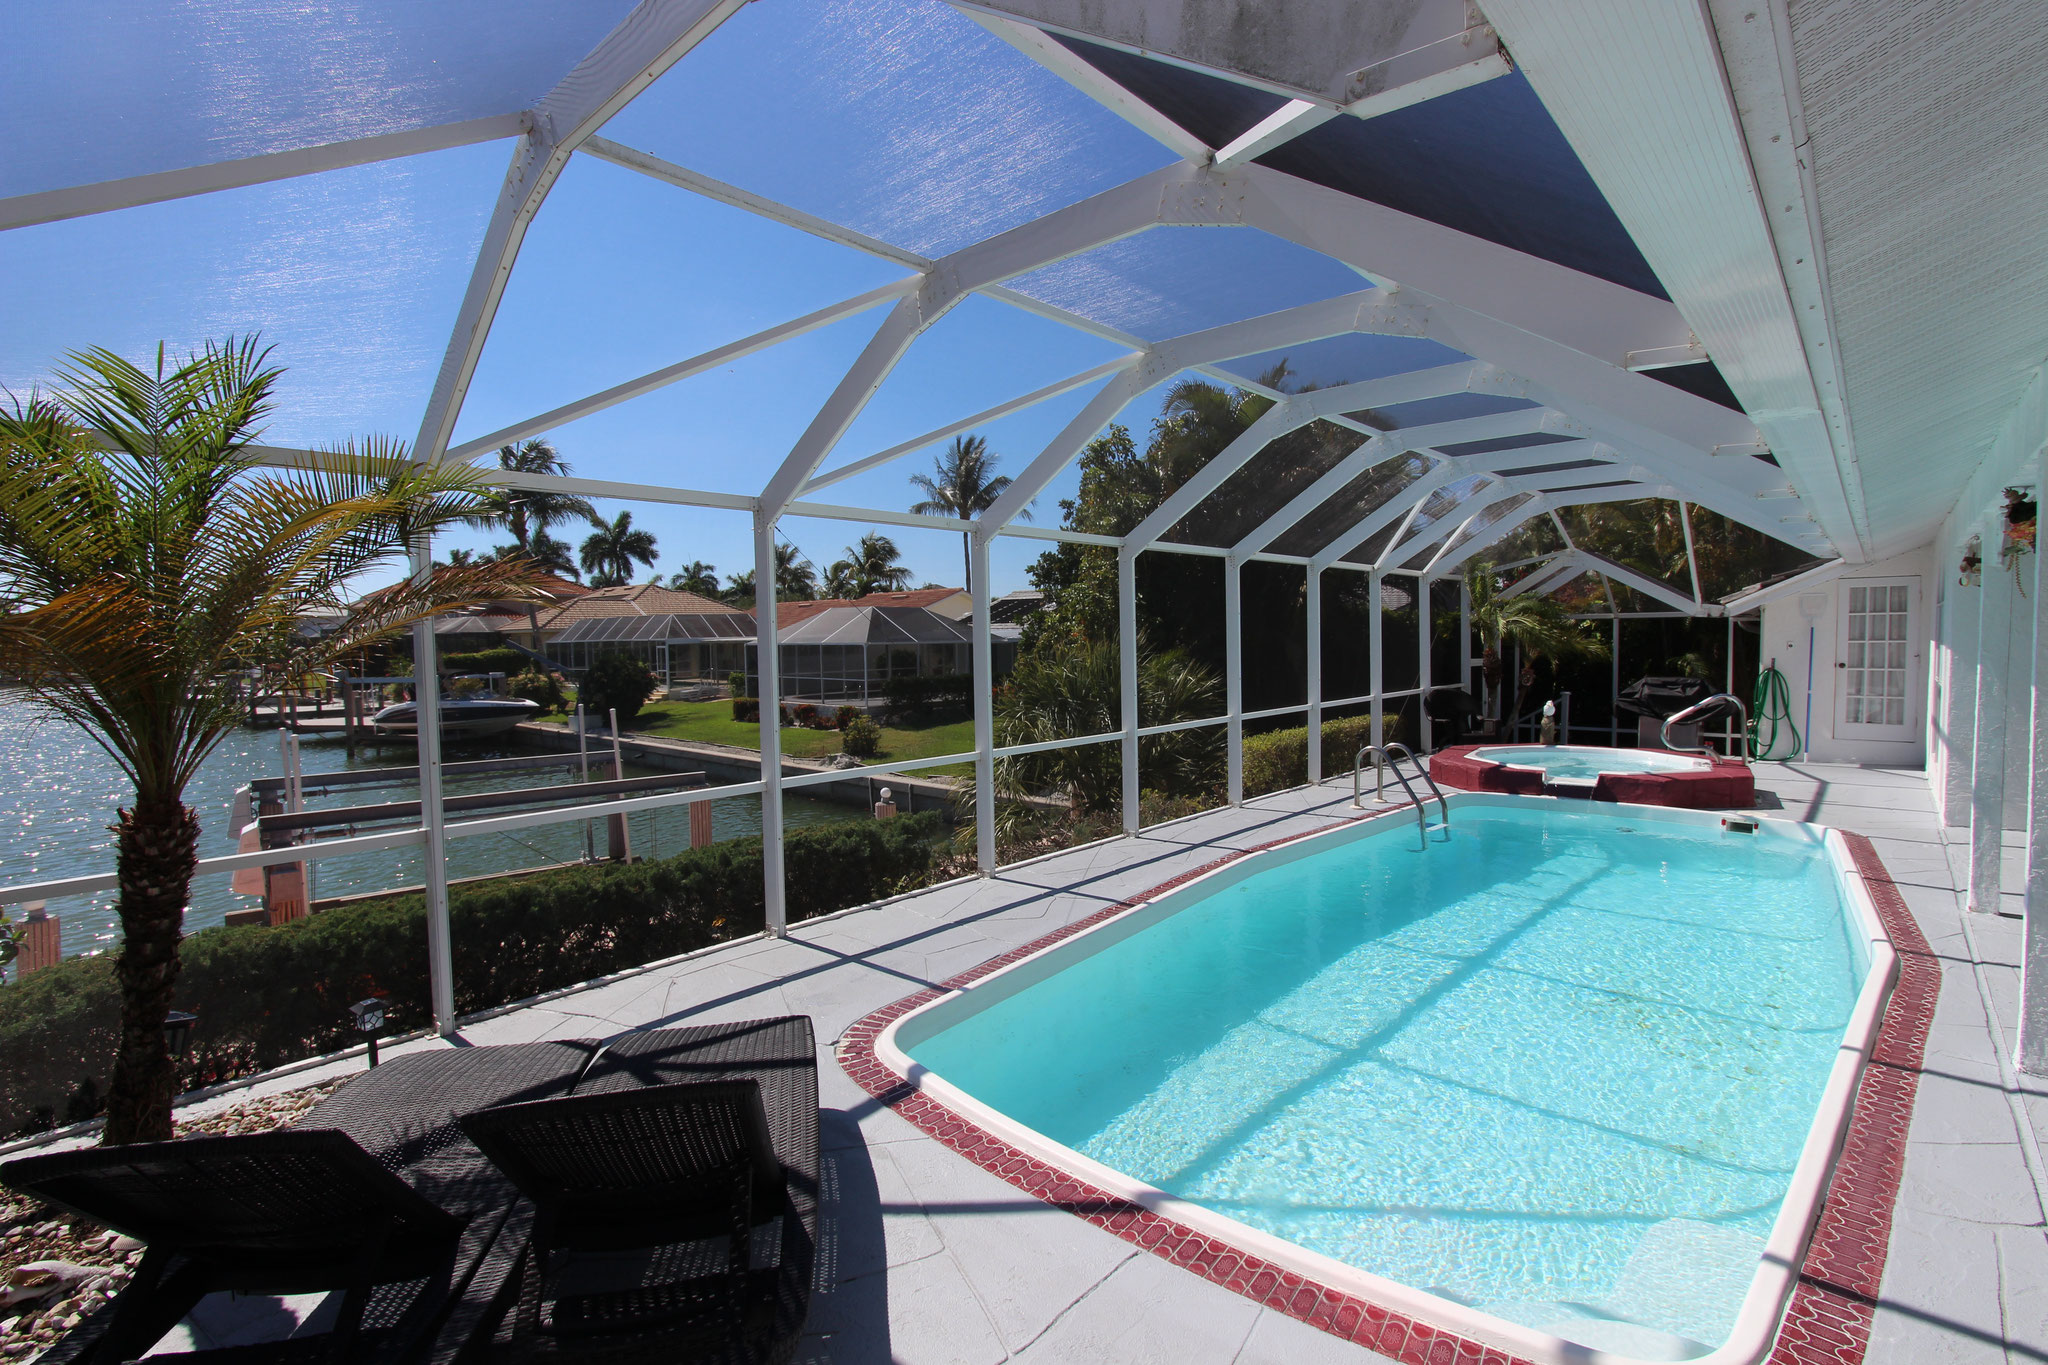 Marco Island Vacation Home Pool